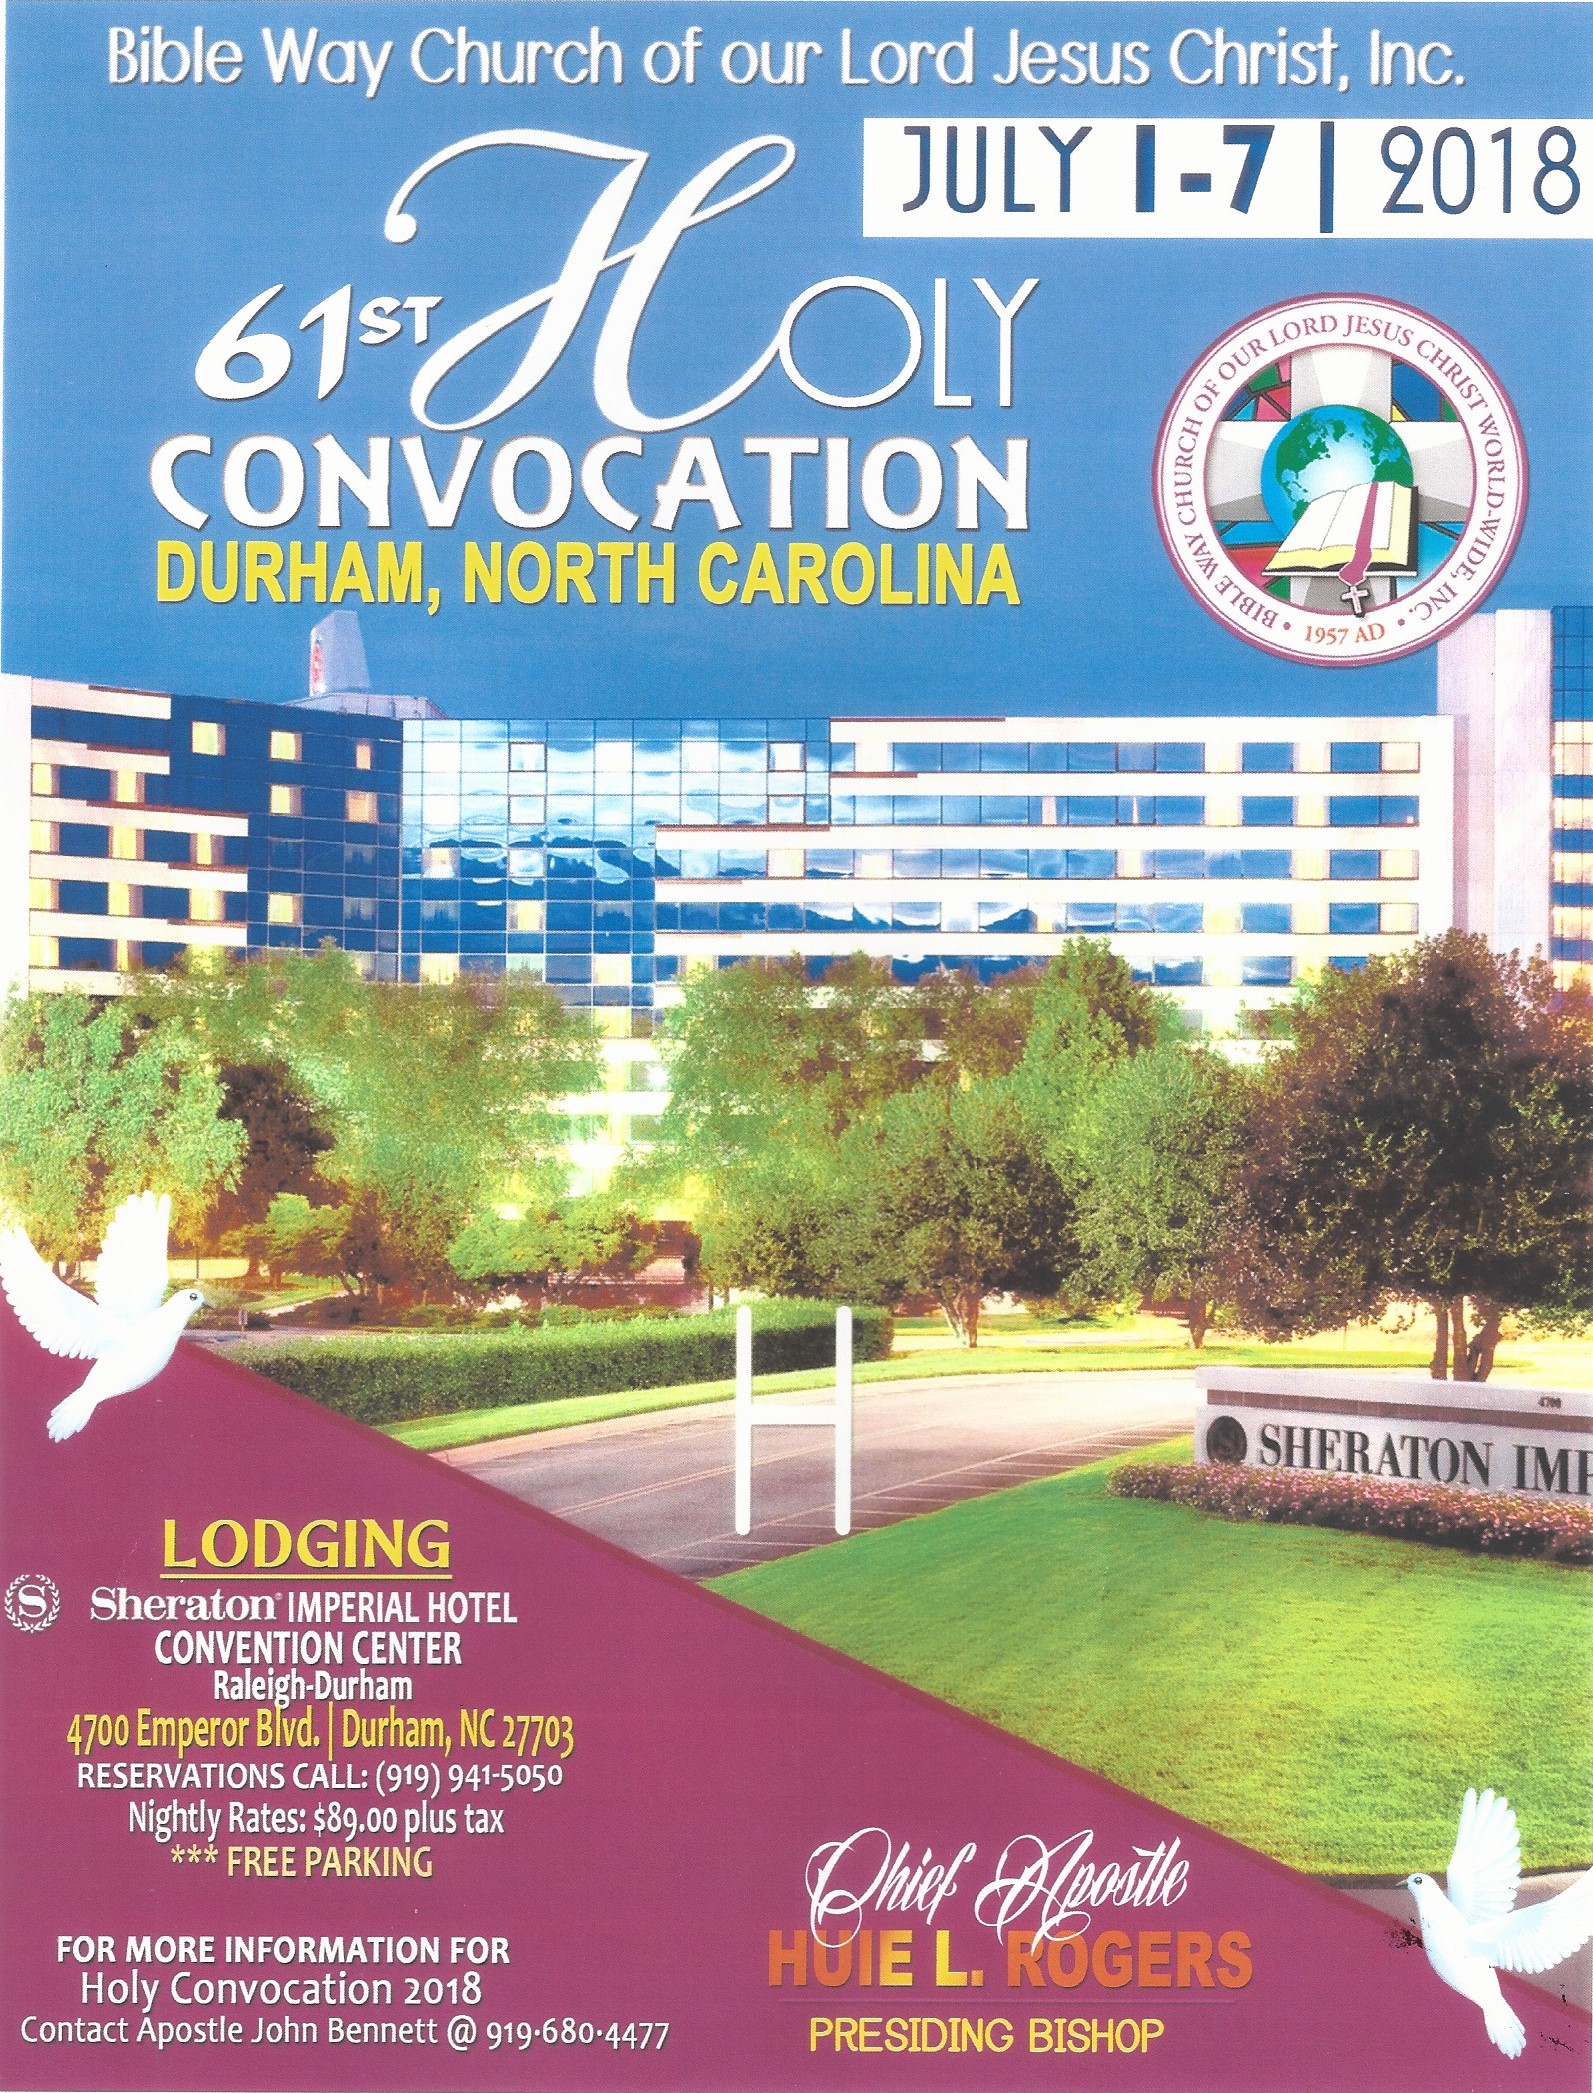 2018 Convocation Flyer_Mod